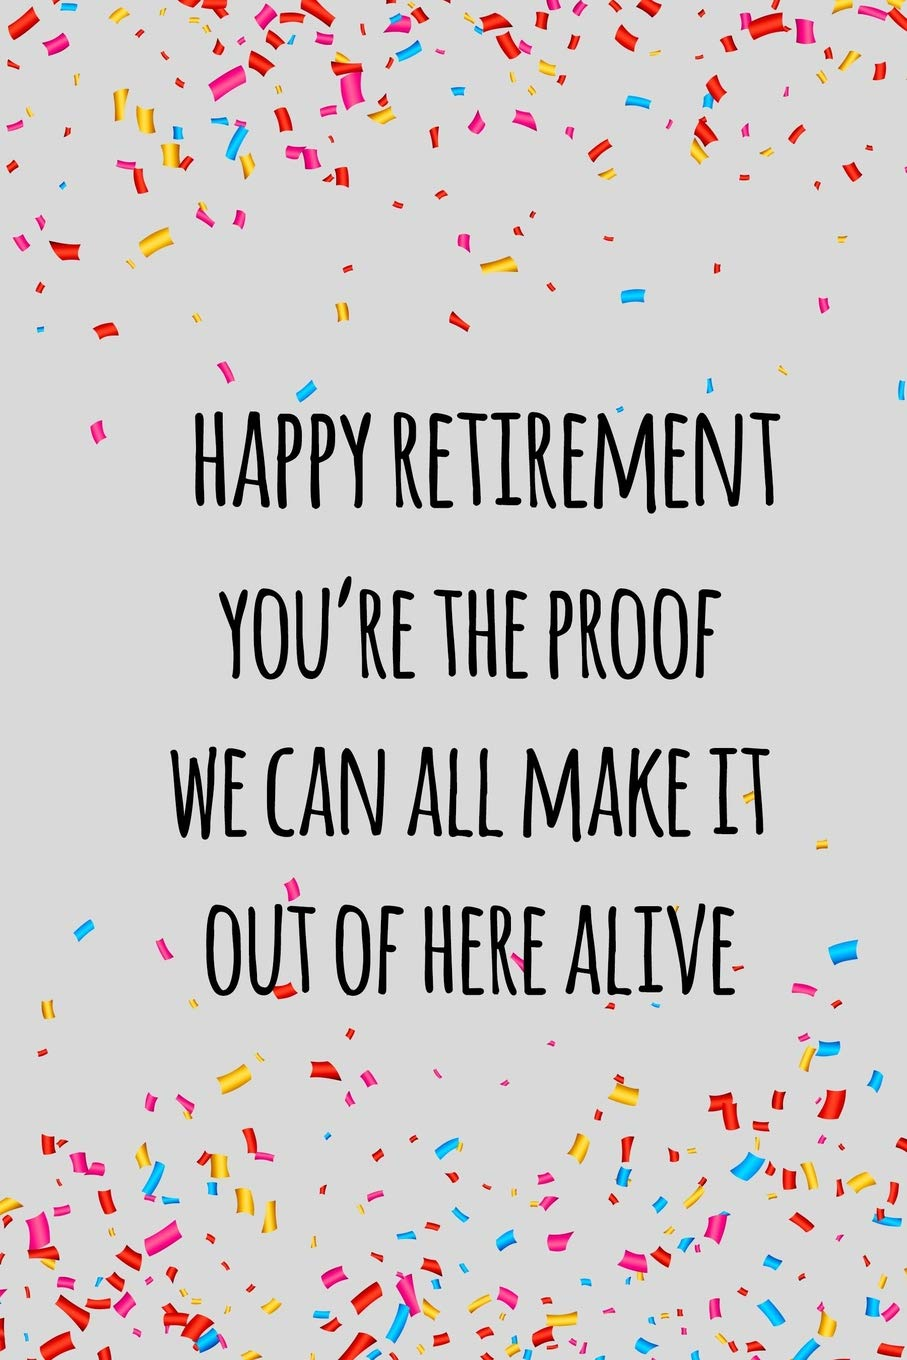 Buy Happy Retirement You Re The Proof We Can All Make It Out Of Here Alive Funny Retirement Gift For Coworker Colleague That Is Going To Retire To Enjoy Pension And Happy